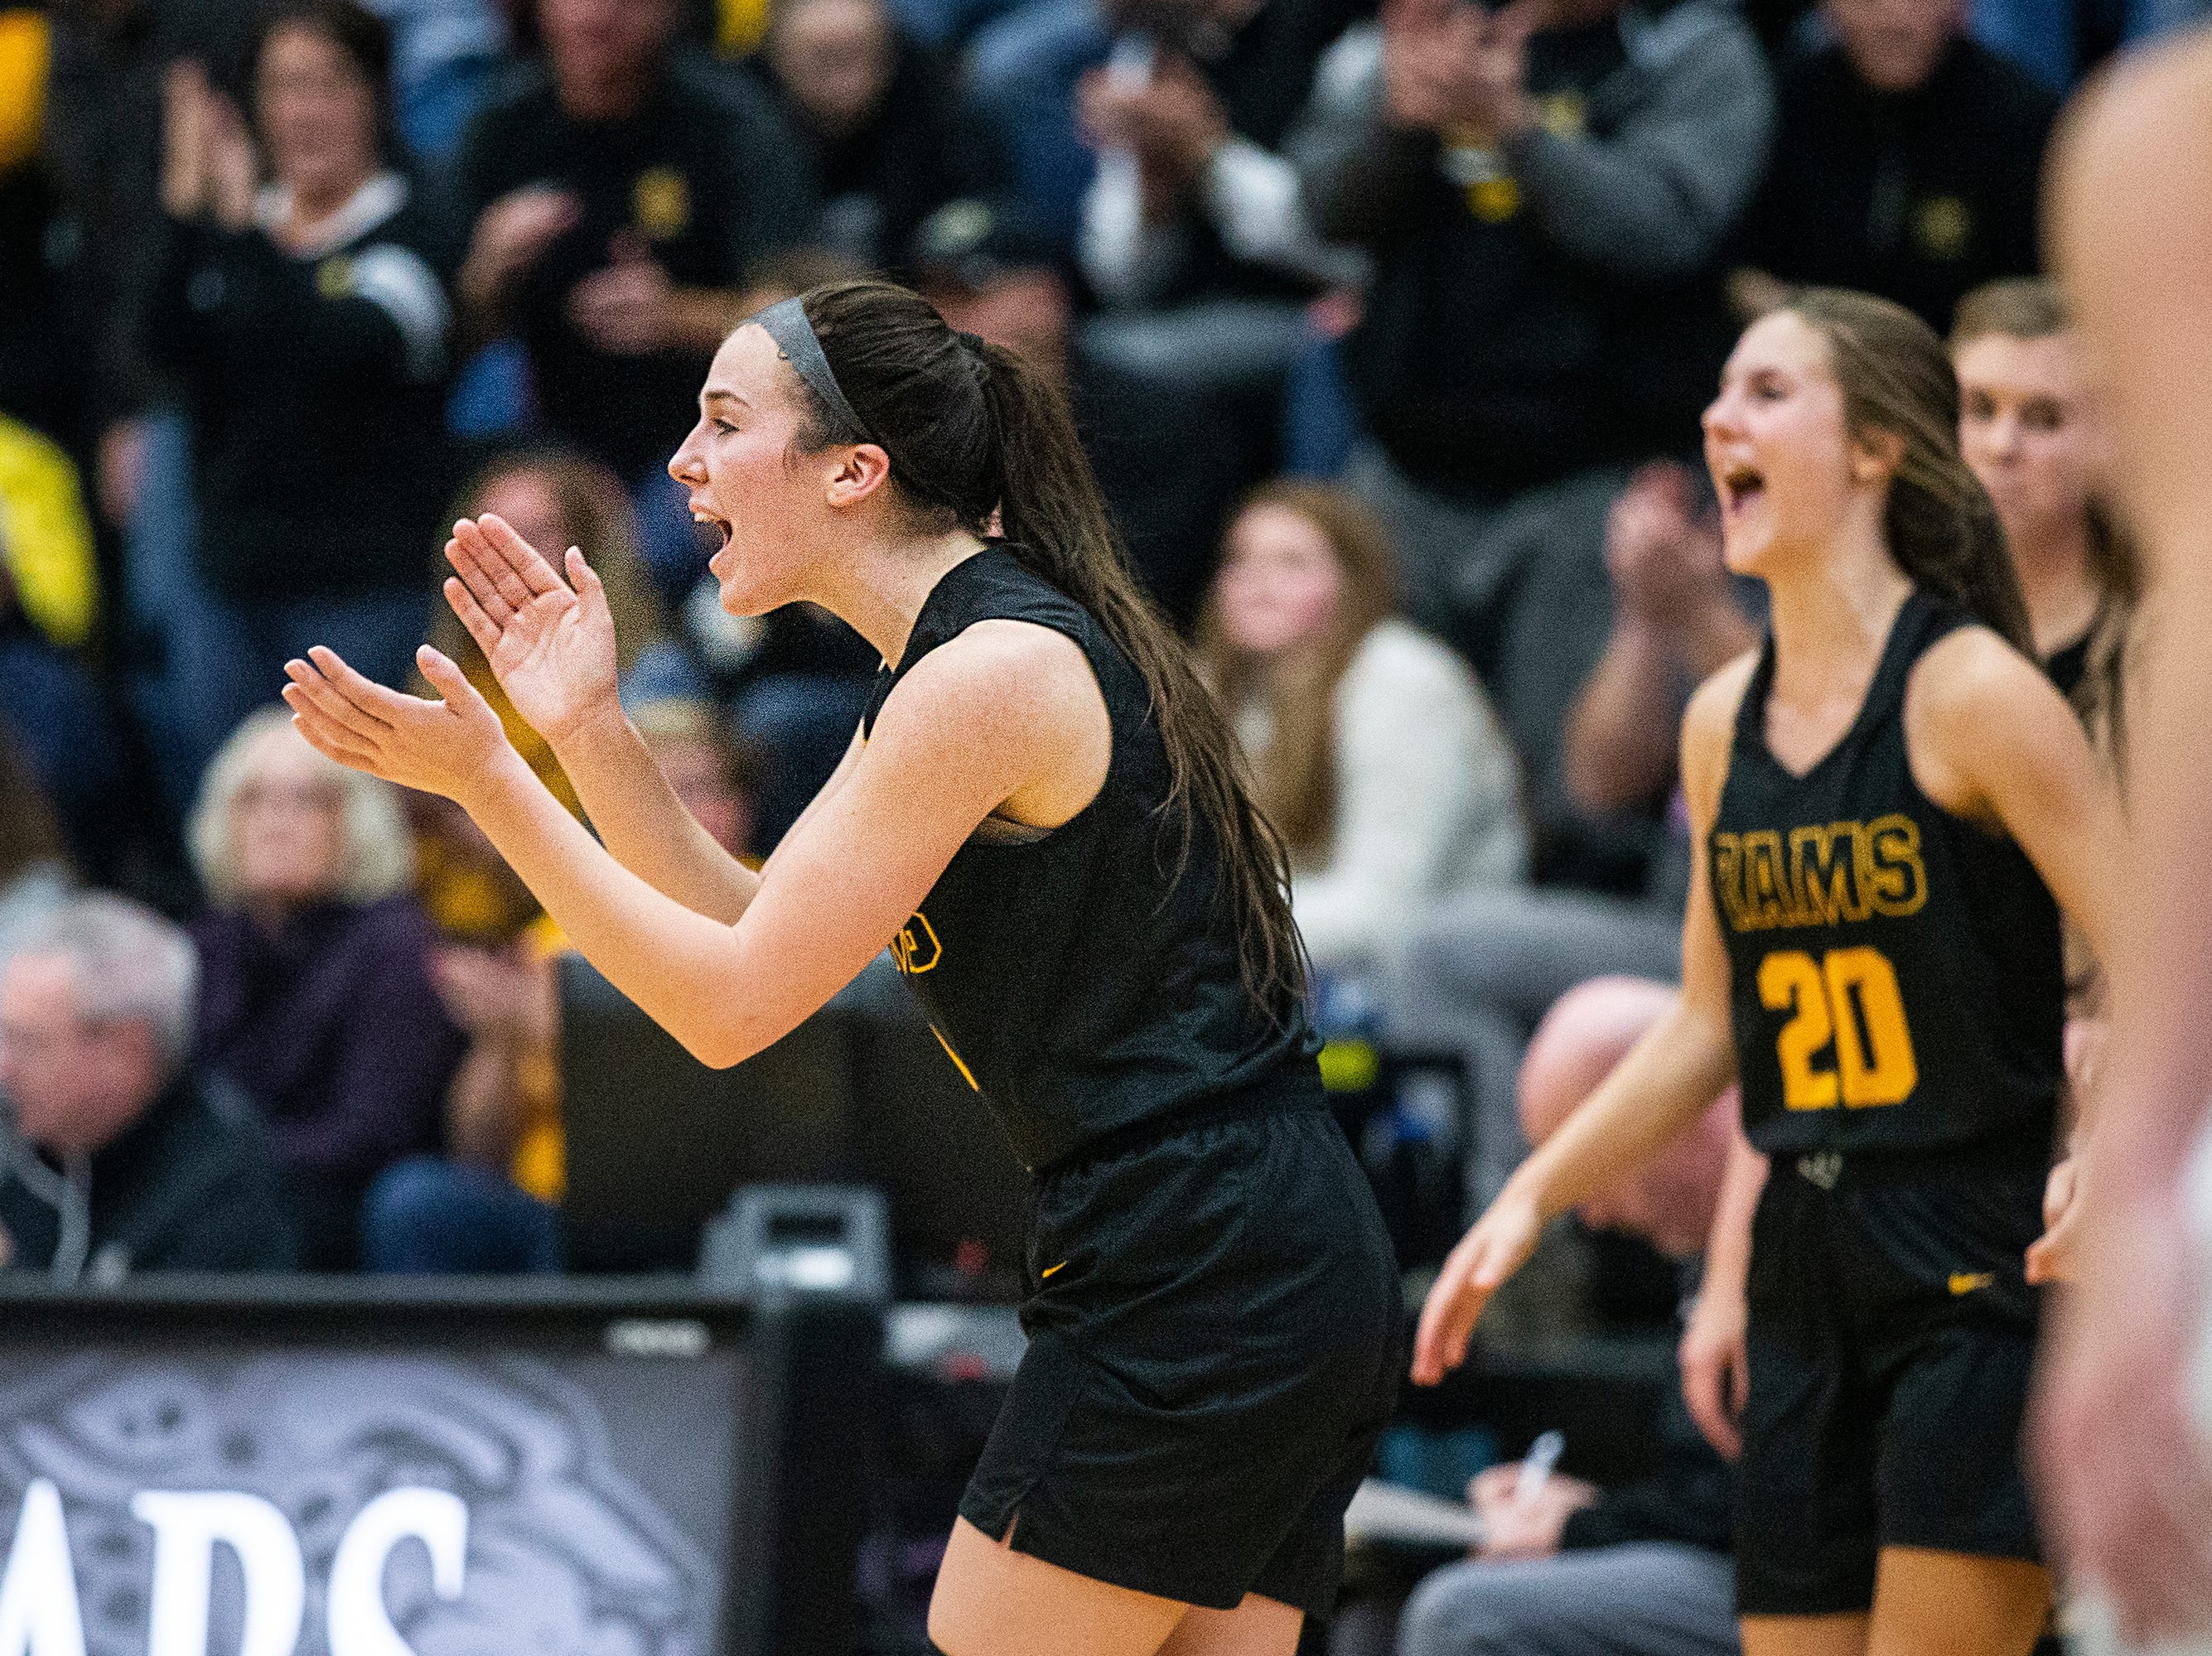 SEP players celebrate after winning the Southeast Polk vs. Ankeny Centennial girls' basketball game on Tuesday, Nov. 27, 2018, at Ankeny Centennial High School.